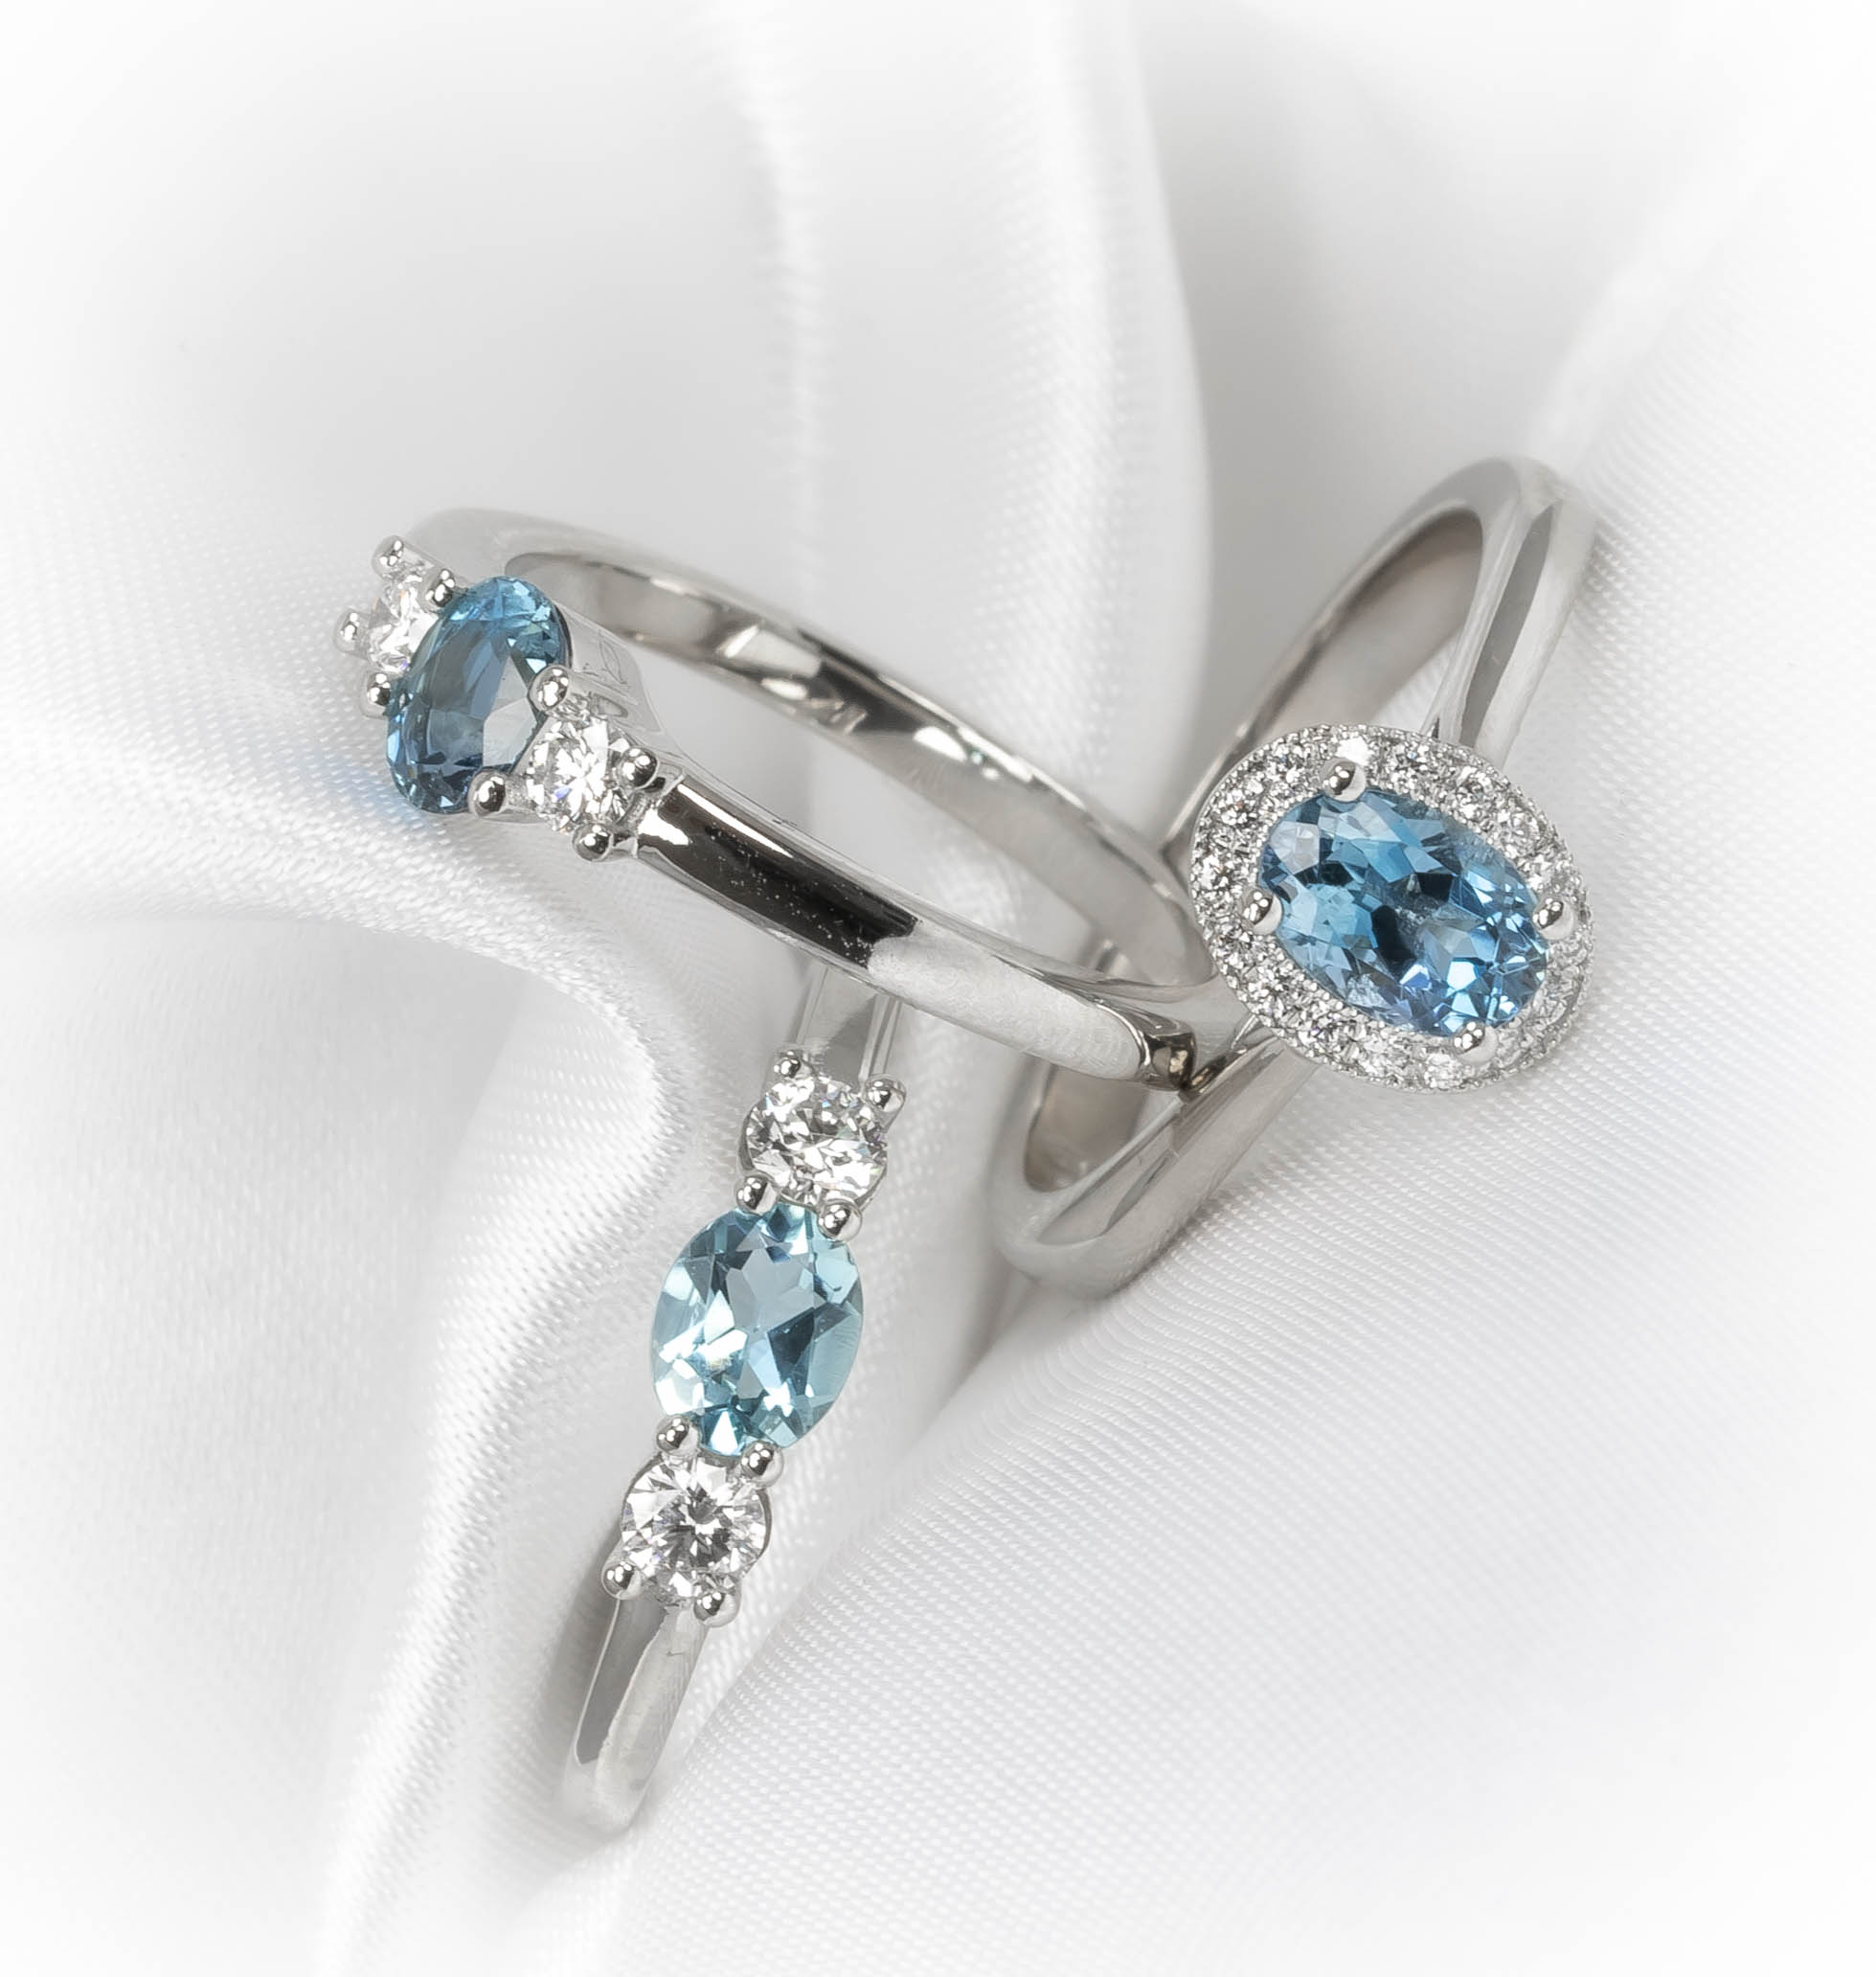 Platinum mounted aquamarine and diamond set rings. Made in Chichester, England.